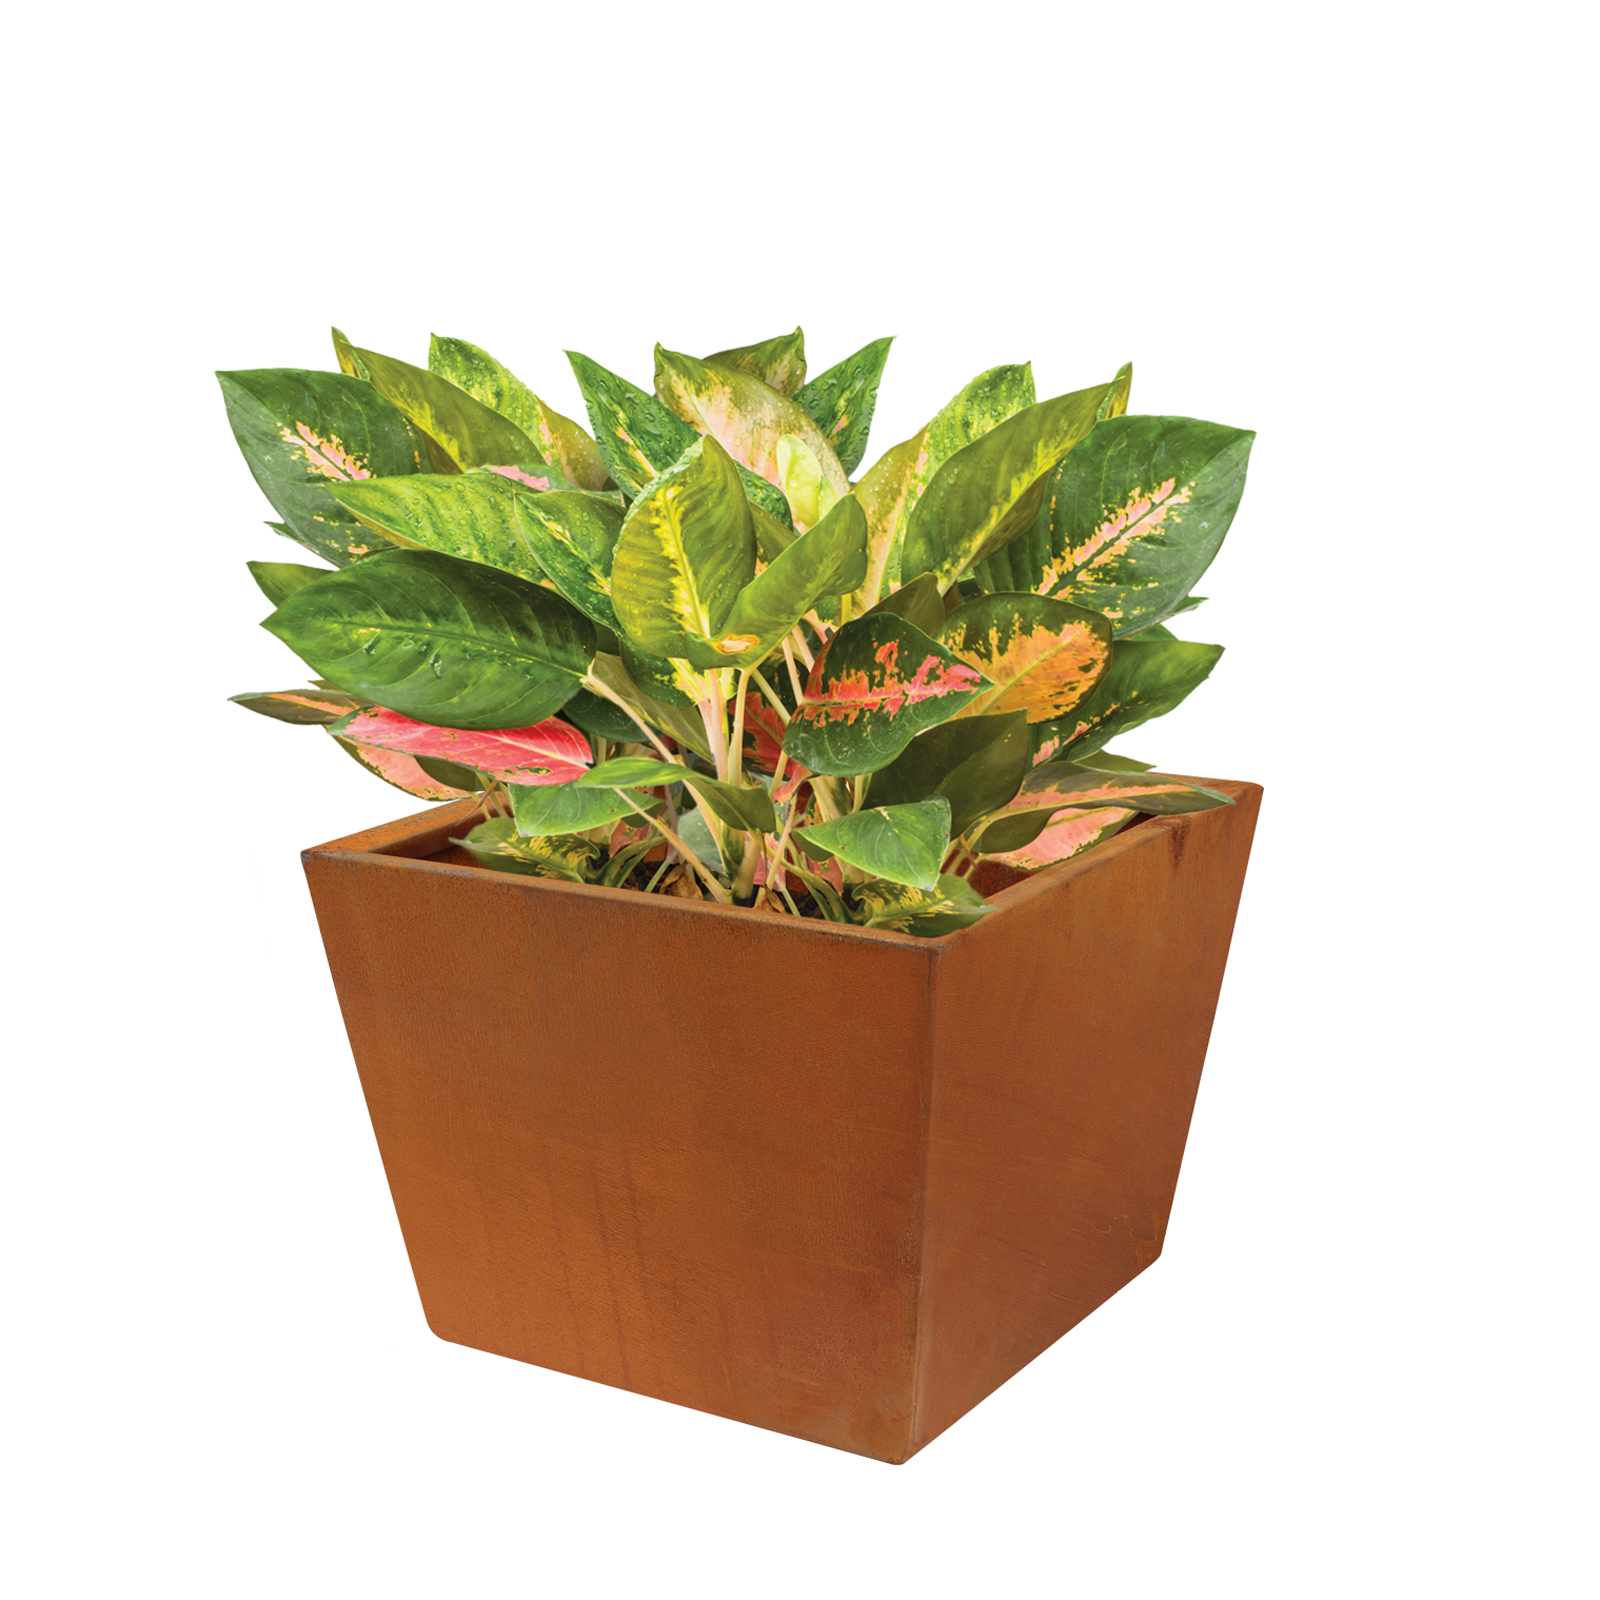 18481 casa planter with plants 346x346x260